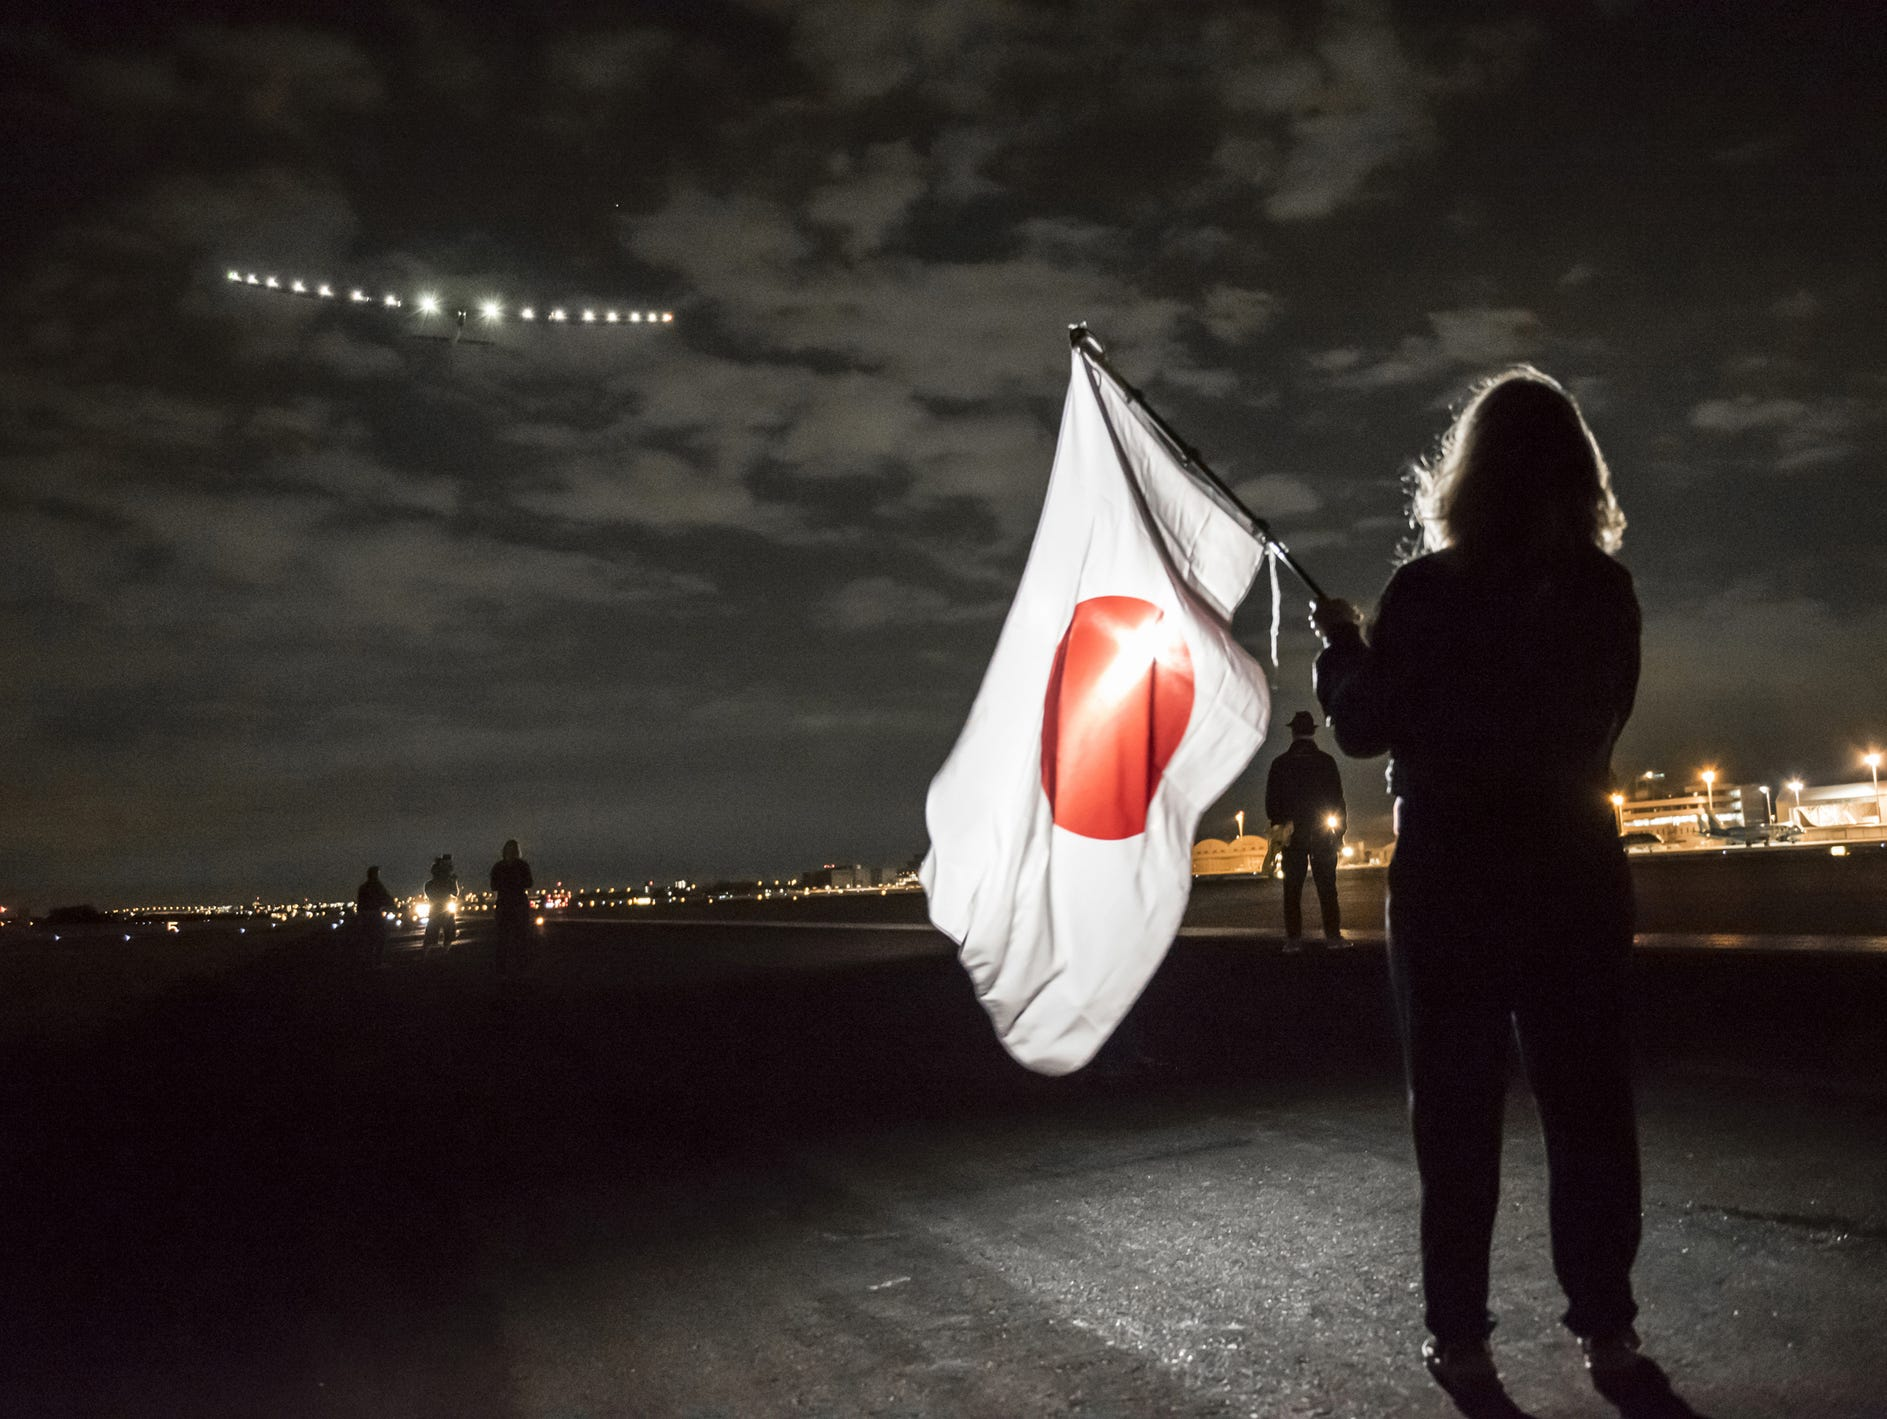 Yasemine Borschberg waves a Japanese flag as the Solar Impulse 2 takes off from the Nagoya Komaki airport with her husband Andre Borschberg as the pilot. The plane is en route to Hawaii after spending an unscheduled four-week stopover due to bad weat